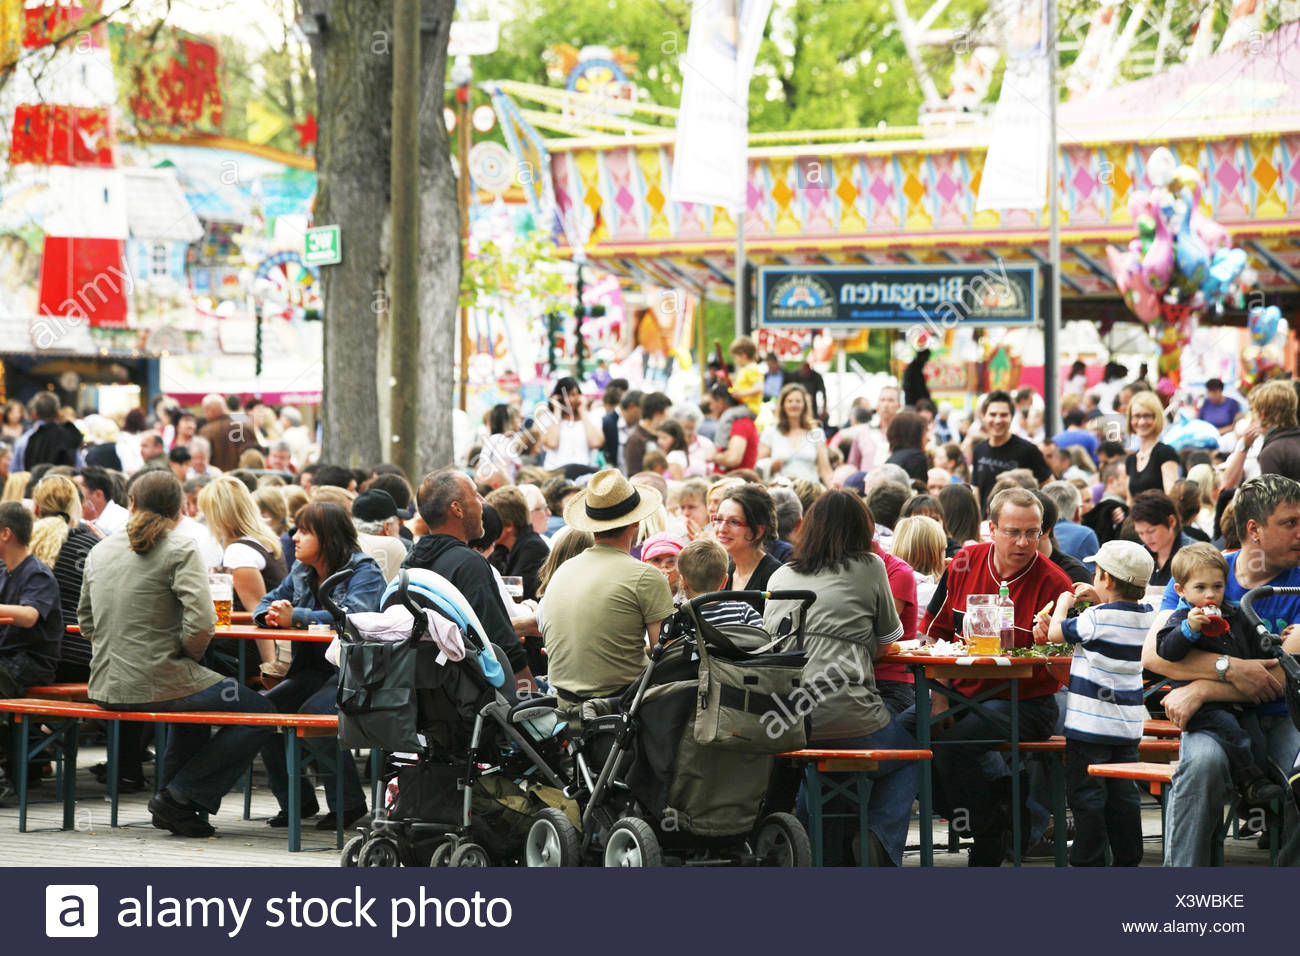 Germany, Lower Bavaria, Landshut, public festival, beer garden, visitor, no model release, Bavarians, fair, Dult, Frühjahrsdult, tradition, traditions, culture, gastronomy, in Bavarian, beer benches, beer tables, people, sit, entertainment, sociability, - Stock Image